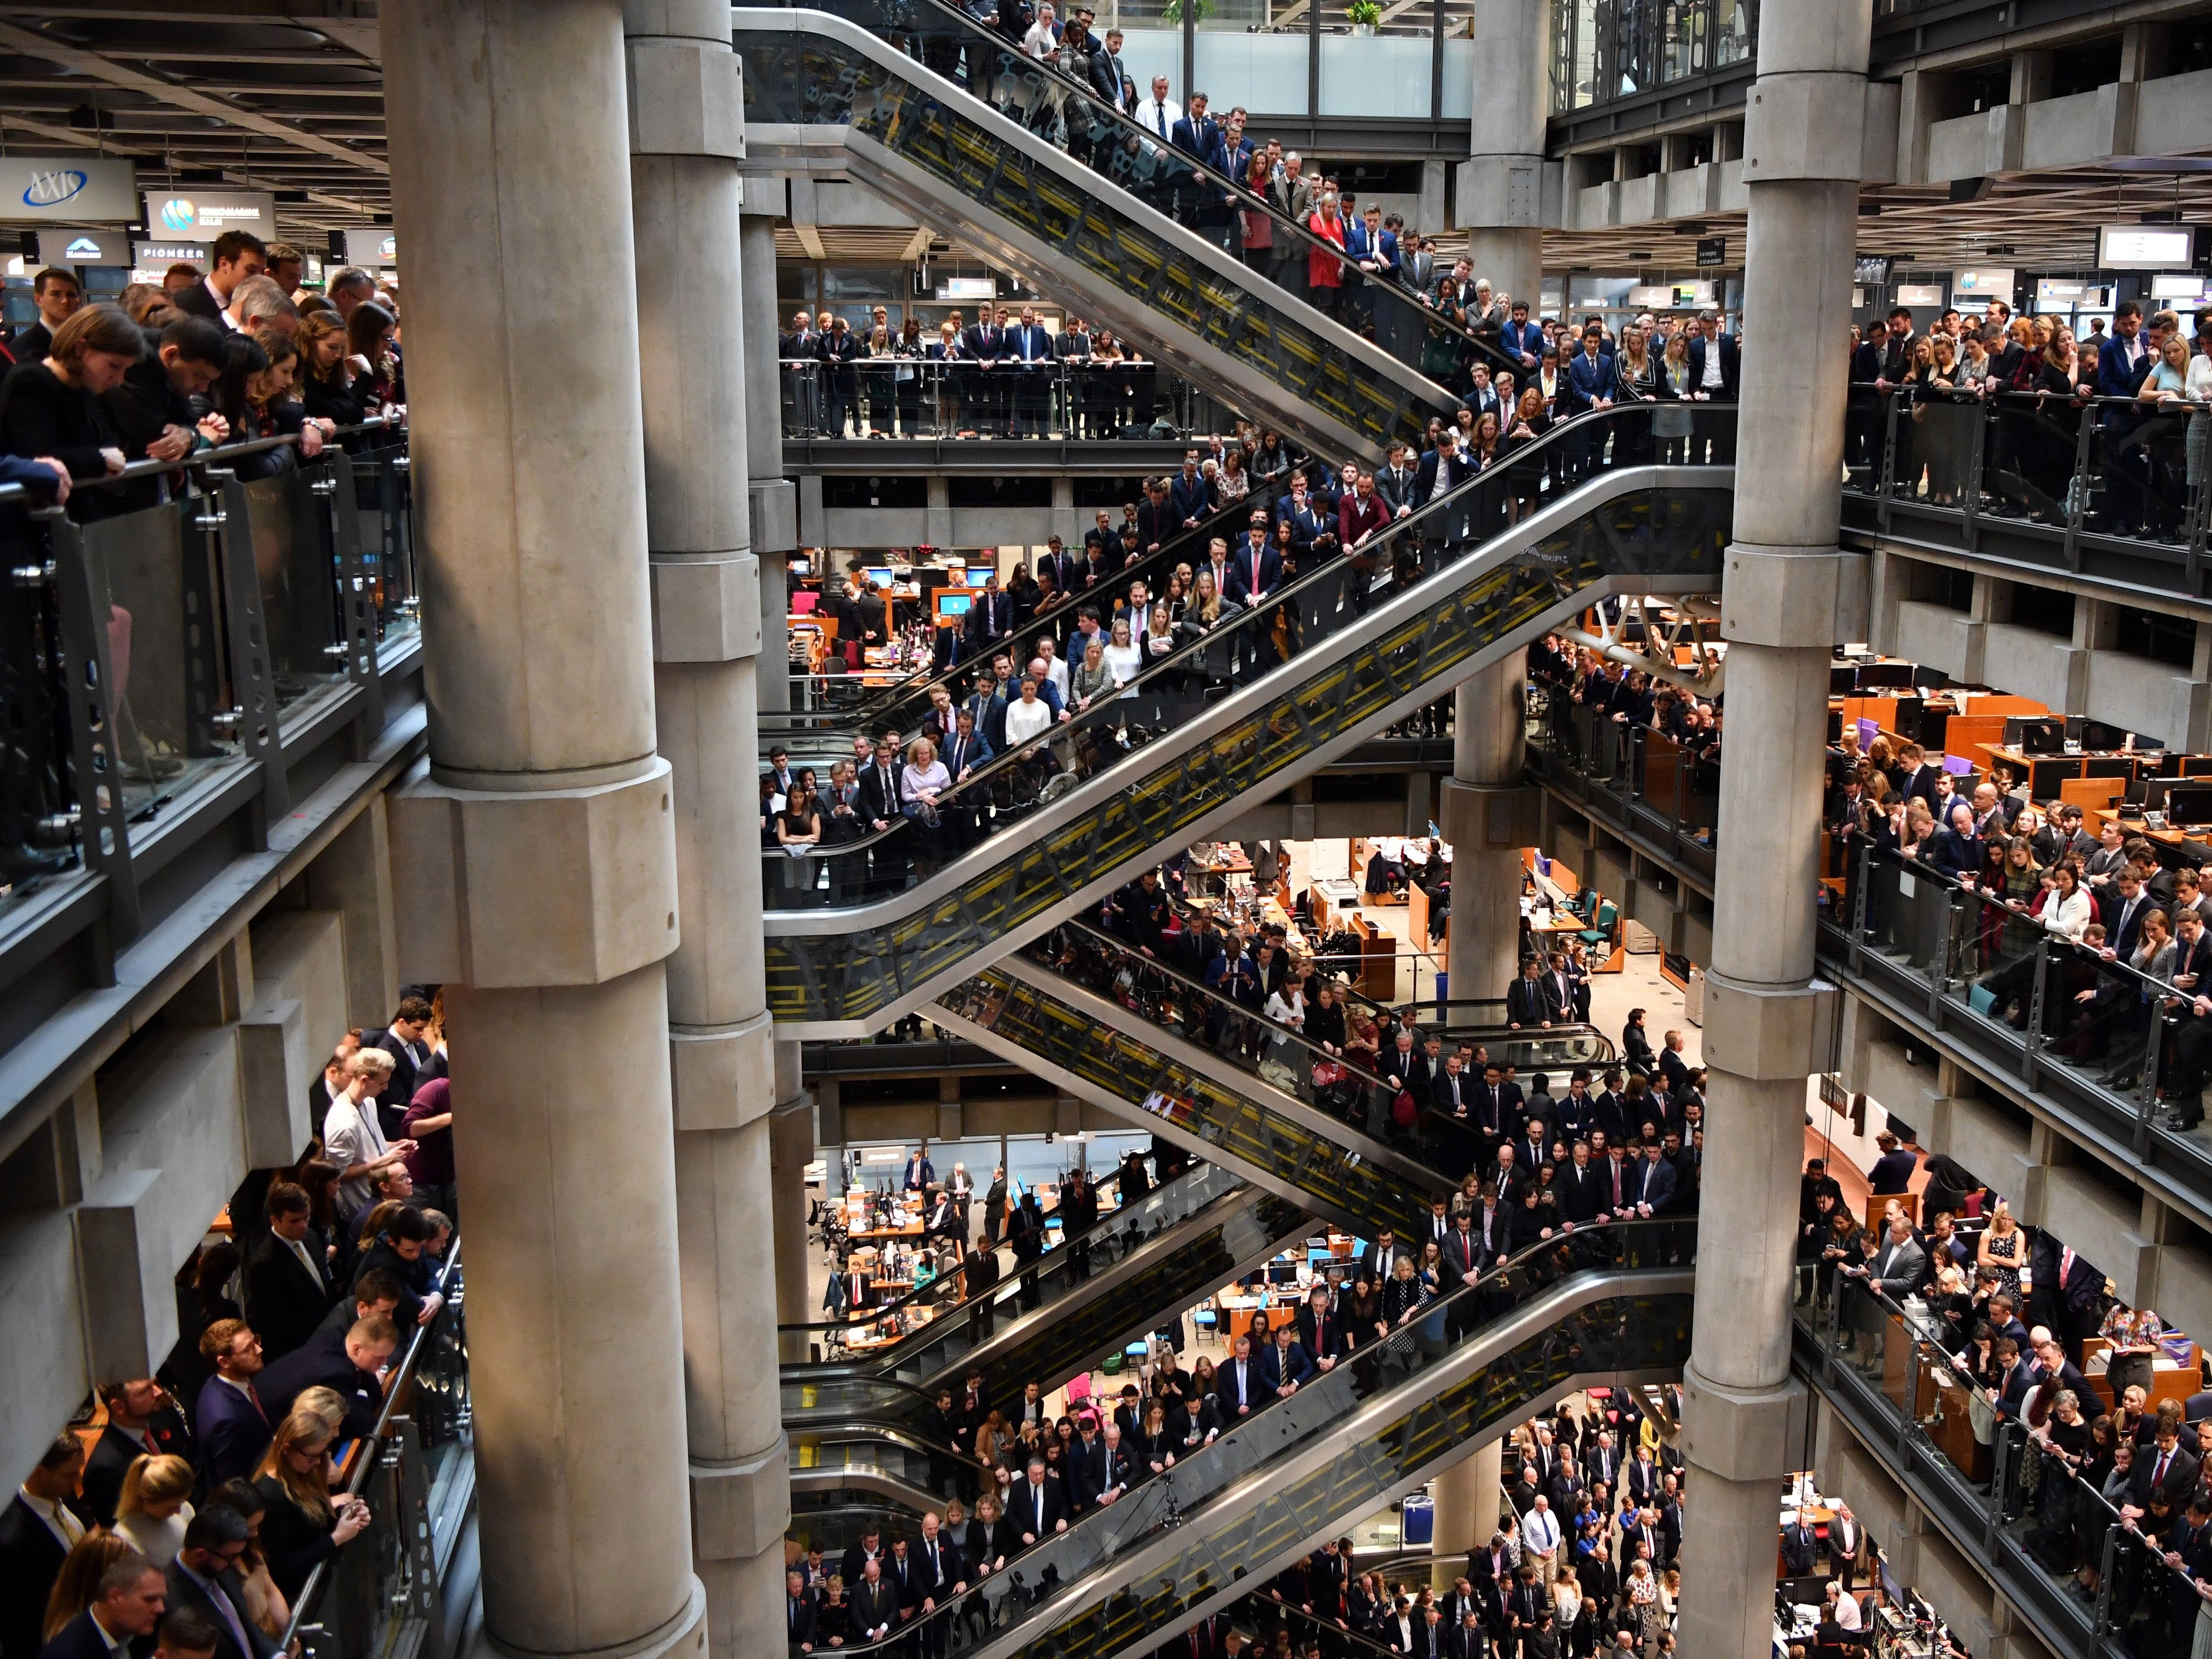 Employees observe a minute's silence in commemoration of Remembrance Day inside Lloyd's of London in the city of London on November 9, 2018. - November 11, 2018 will be the 100th anniversary of the end of WWI. In the run-up to Armistice Day, many Britons wear a paper red poppy -- symbolising the poppies which grew on French and Belgian battlefields during World War I.